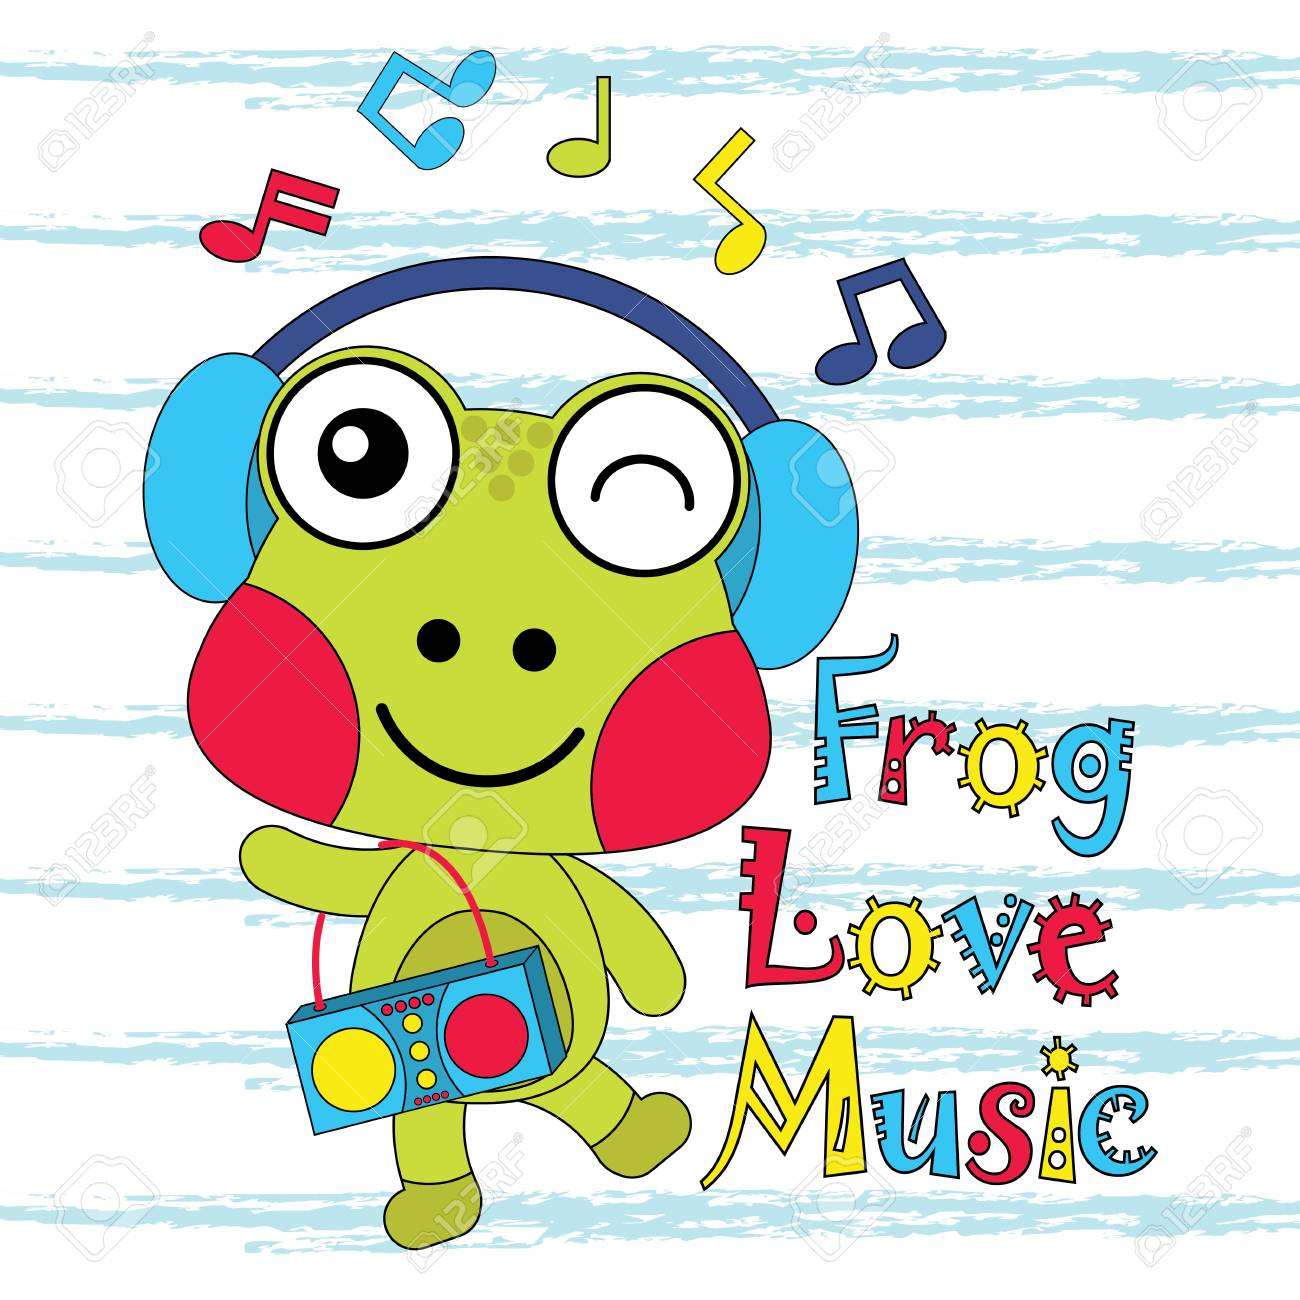 Best Wallpaper Music Kid - 84339817-vector-cartoon-illustration-of-cute-frog-loves-music-suitable-for-kid-t-shirt-graphic-design-backdro  Pic_725783.jpg